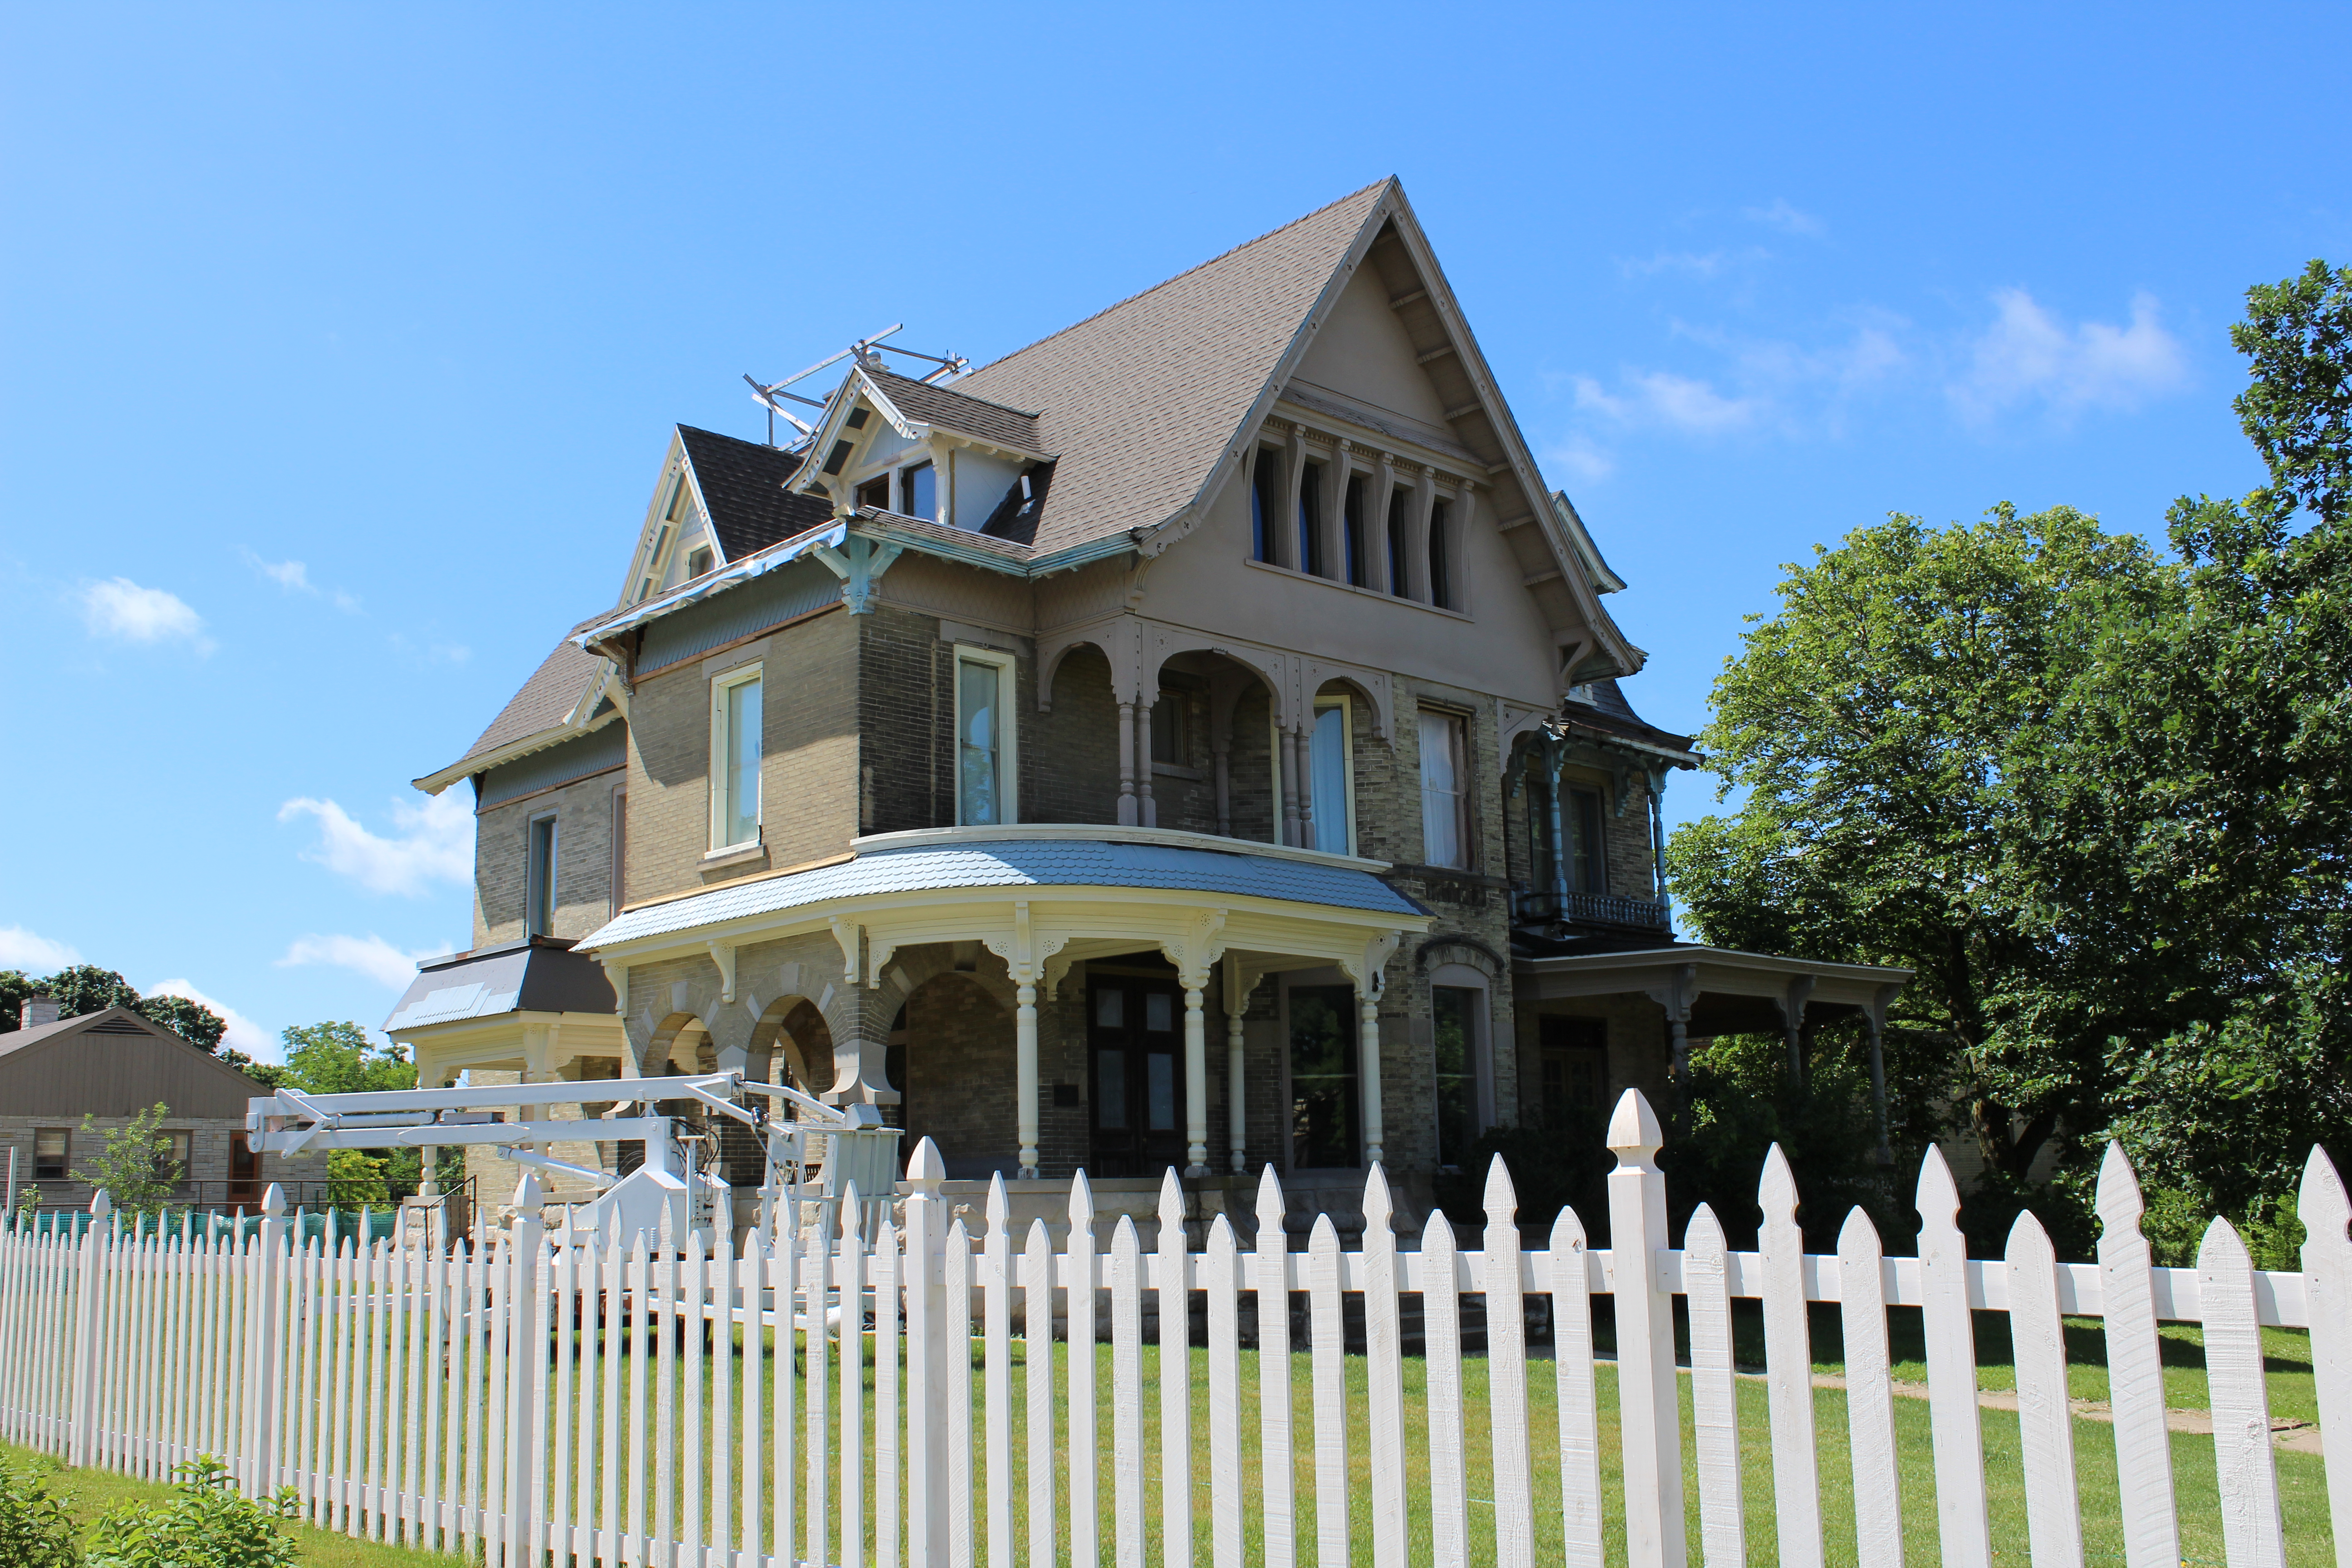 The house as it looks today, currently under restoration.